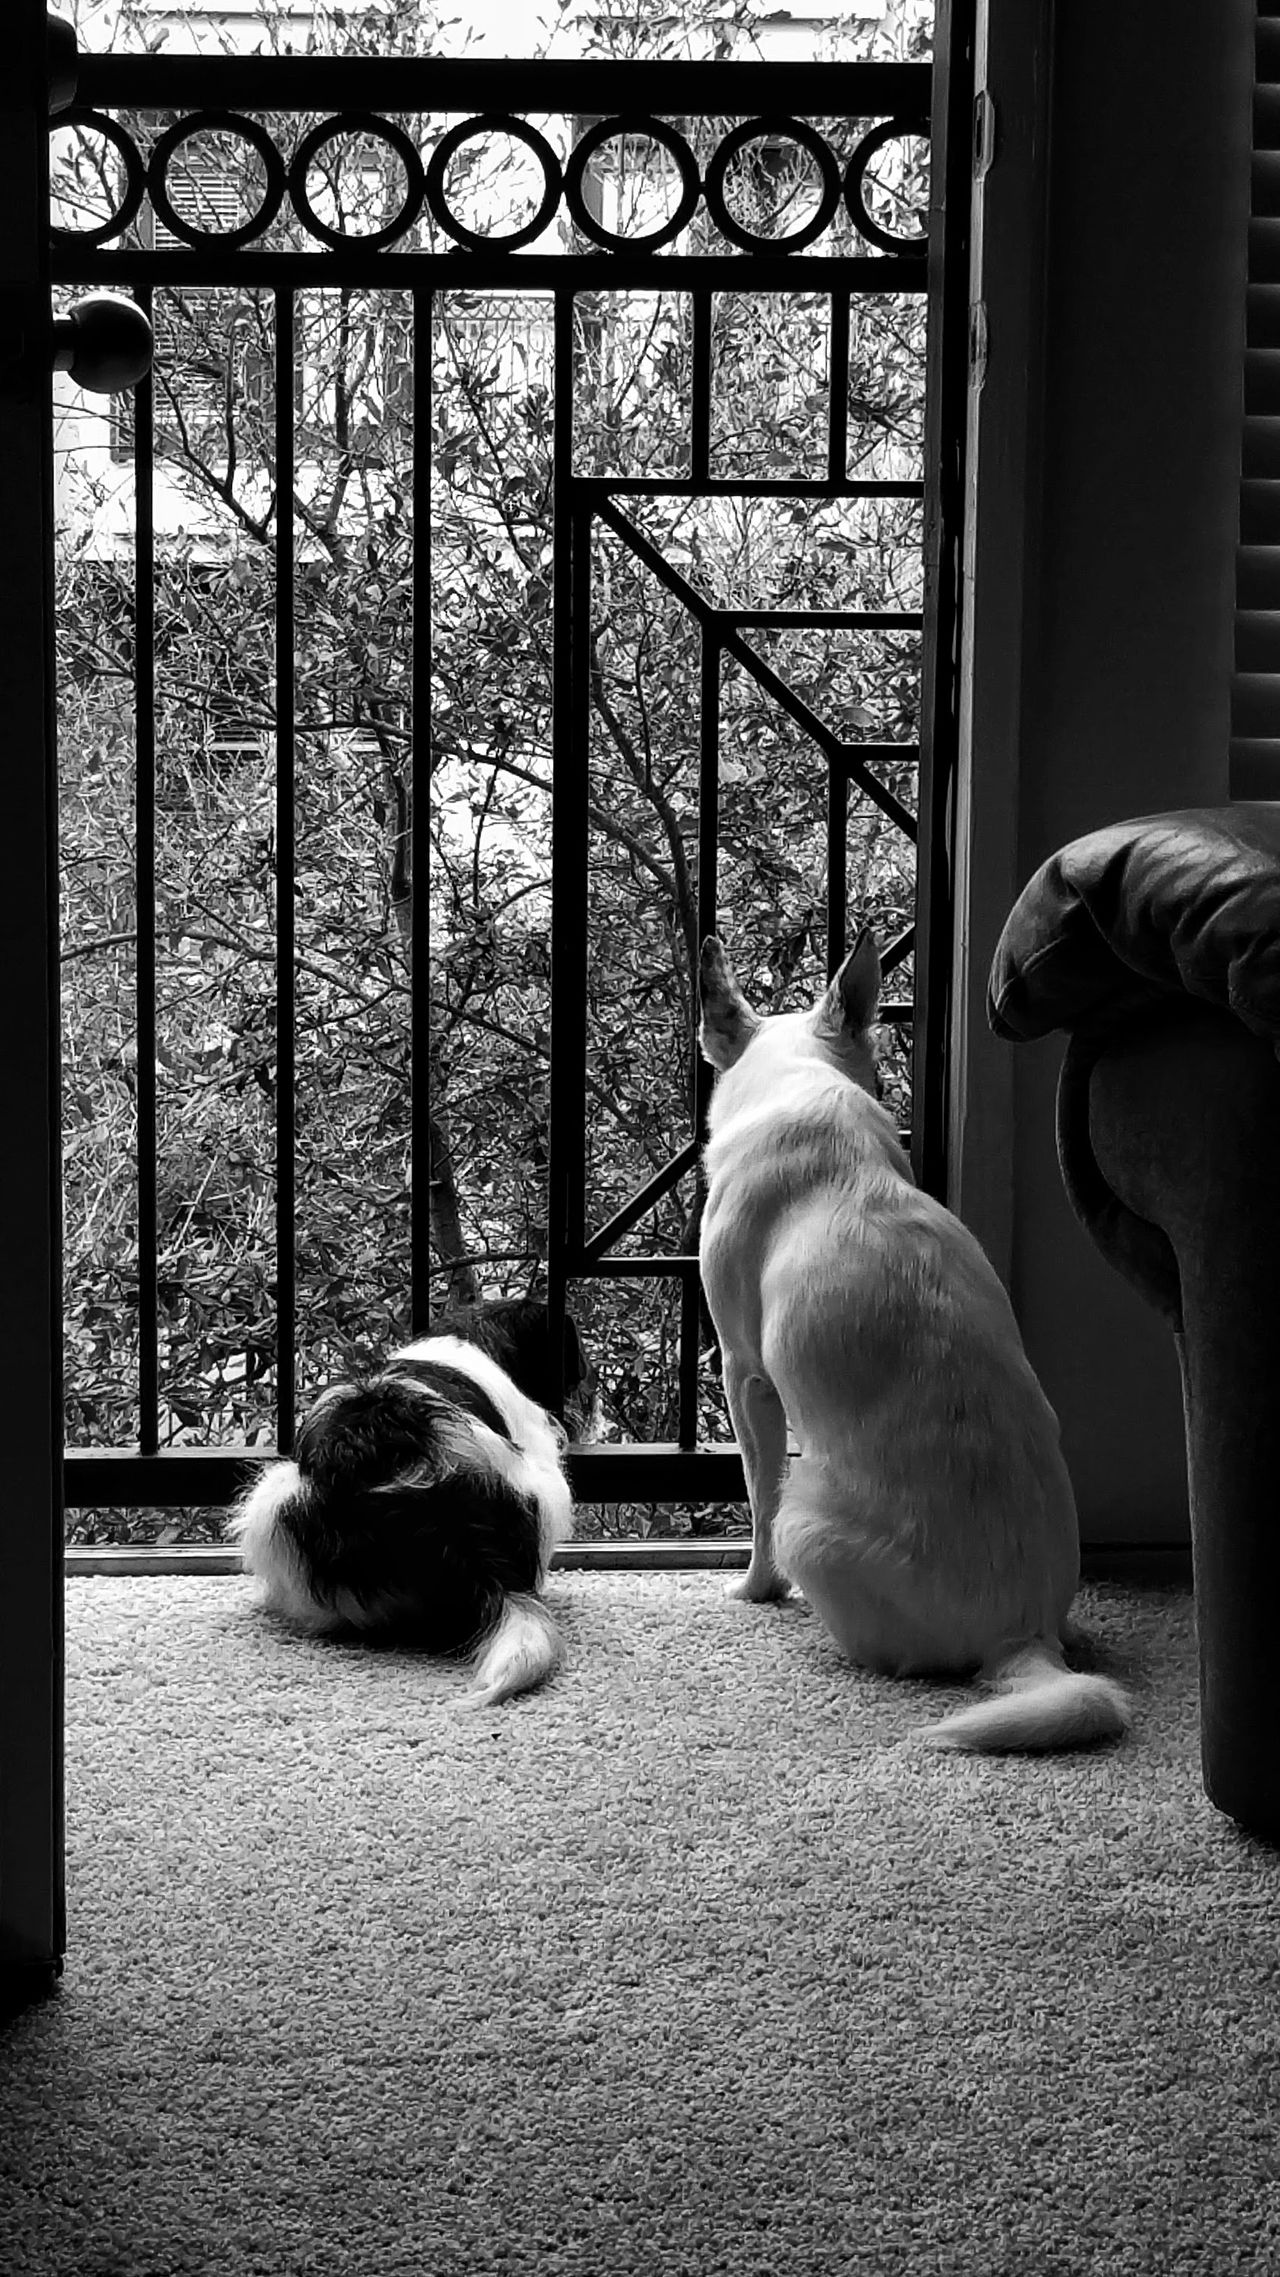 Window Animal Themes Domestic Animals No People Indoors  Pets Dogslife Dog Love Dogs Watching Black & White Blackandwhite Black And White Pet Love Dogs Life Pets Of Eyeem Dogphoto Doggy Love Puppy Love Mammal Day Two Dogs Two Pets Waiting Wallpaper